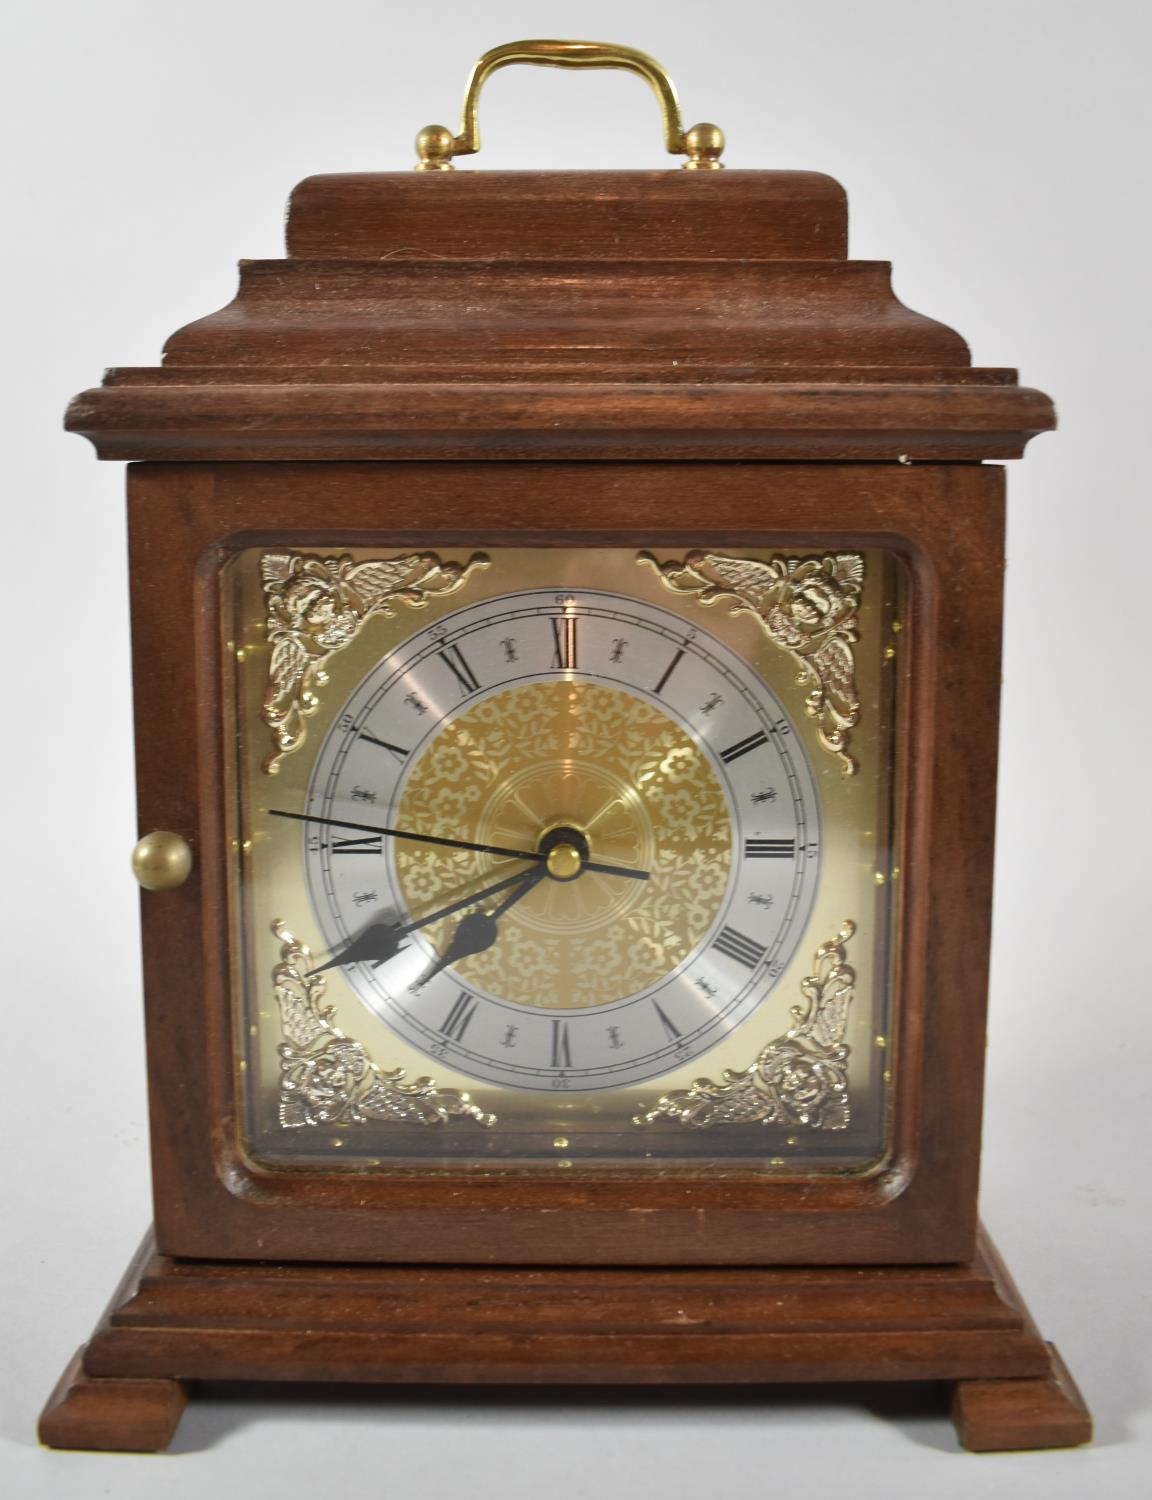 A Mid/Late 20th Century Mahogany Cased Bracket Clock with Battery Movement, 28cm high